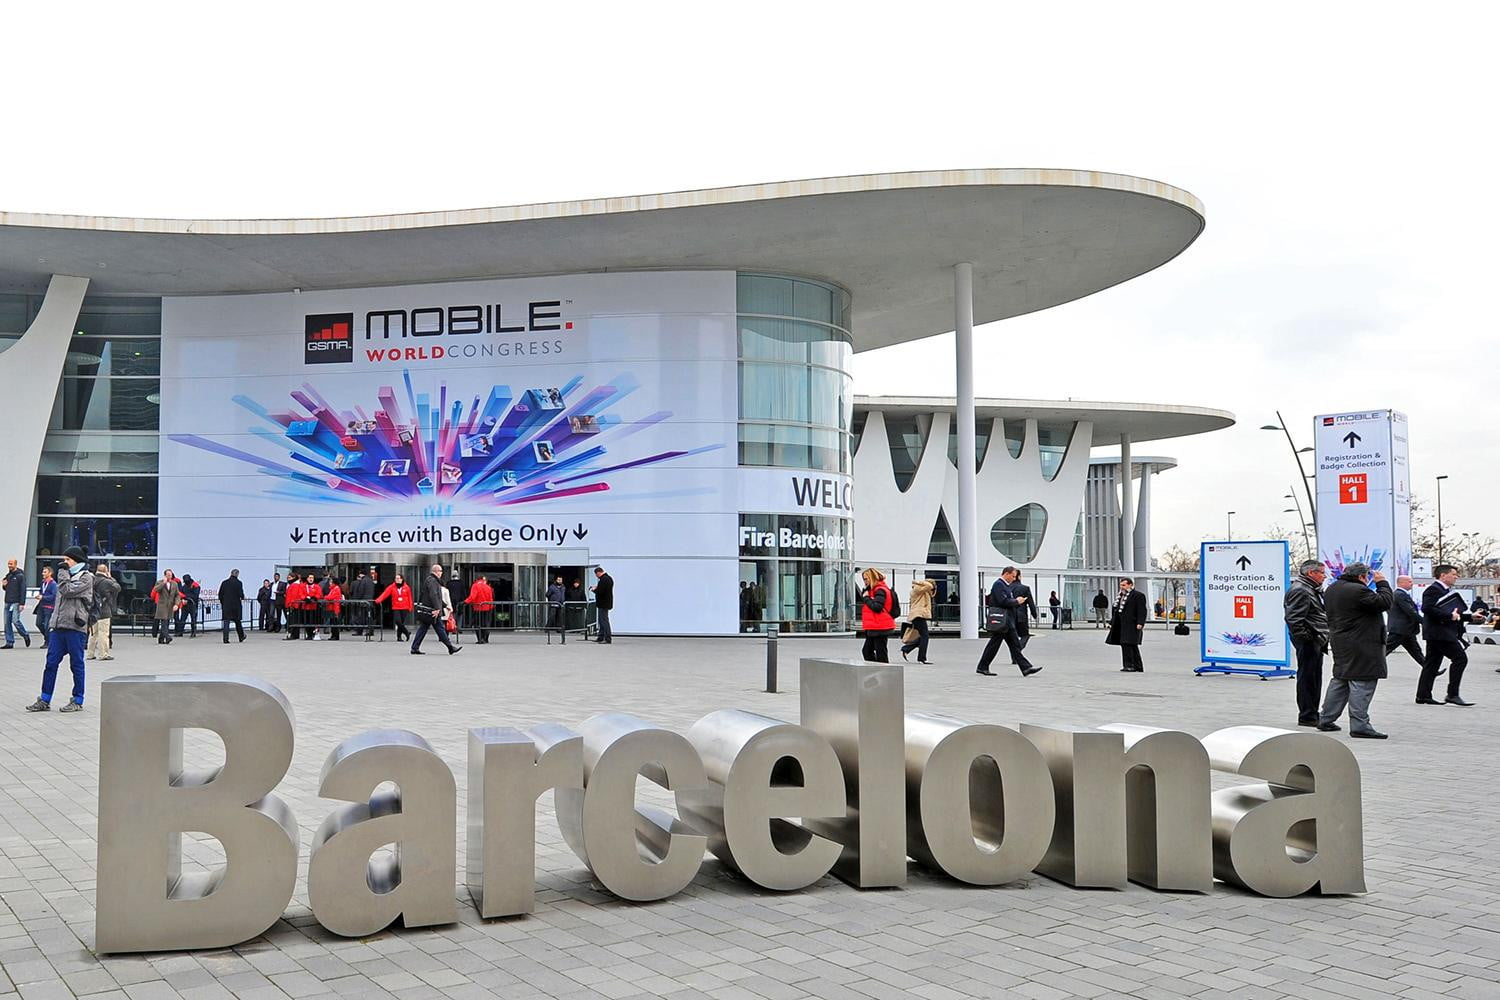 mobile-world-congress-mwc-preview-1500x1000-2